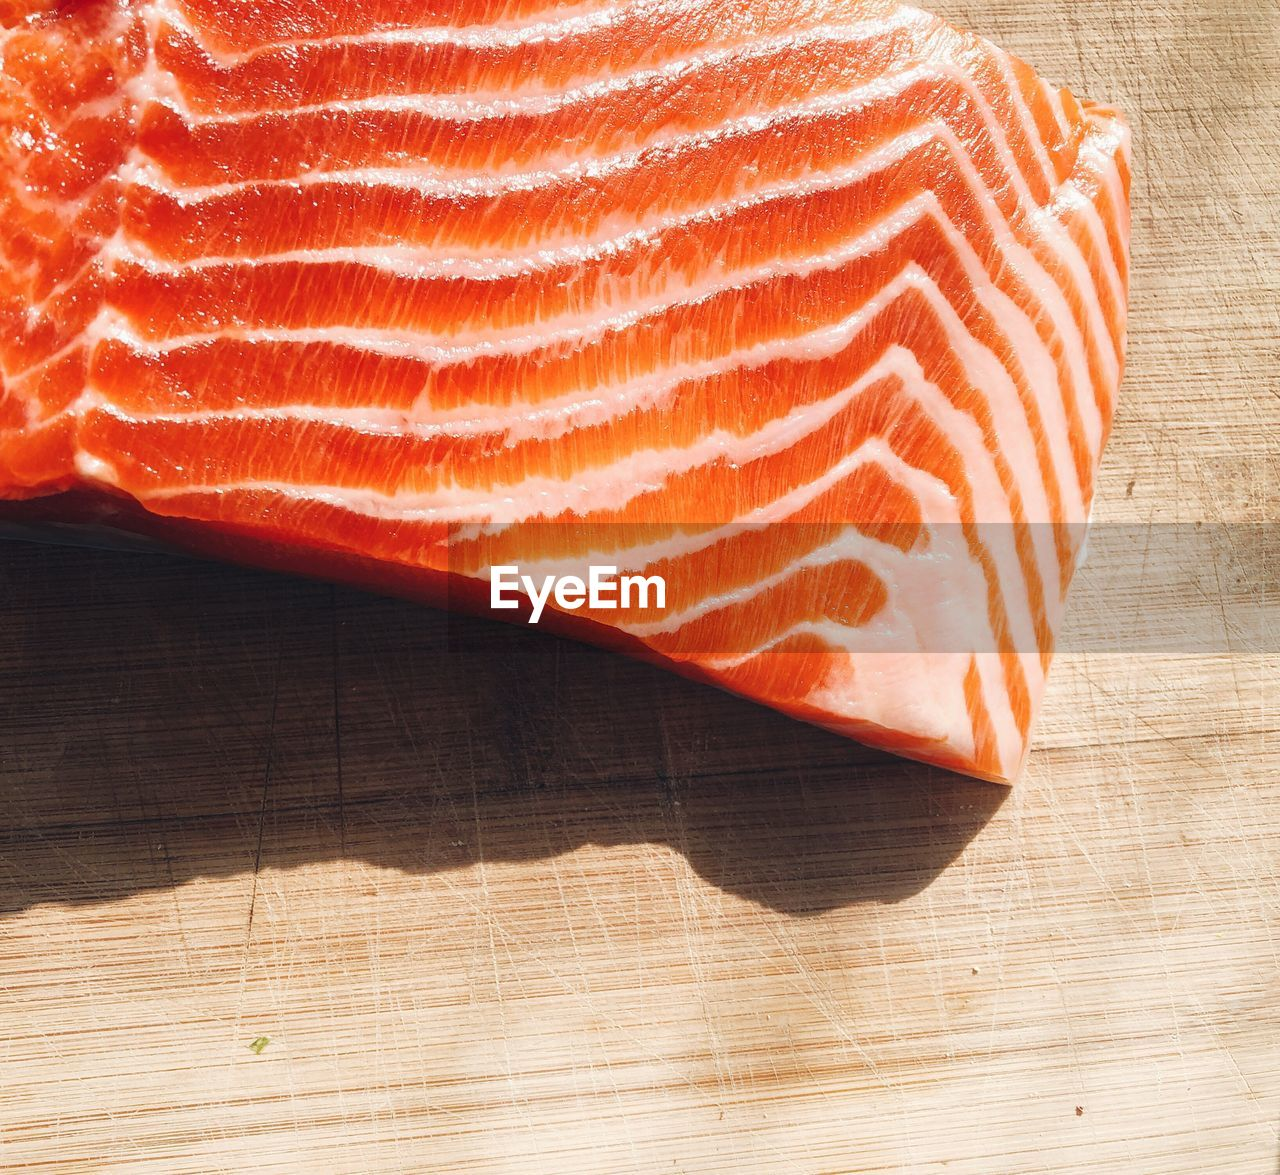 food and drink, food, freshness, indoors, no people, high angle view, close-up, table, meat, preparation, raw food, healthy eating, wellbeing, wood - material, still life, nature, shadow, slice, heat - temperature, single object, japanese food, wood grain